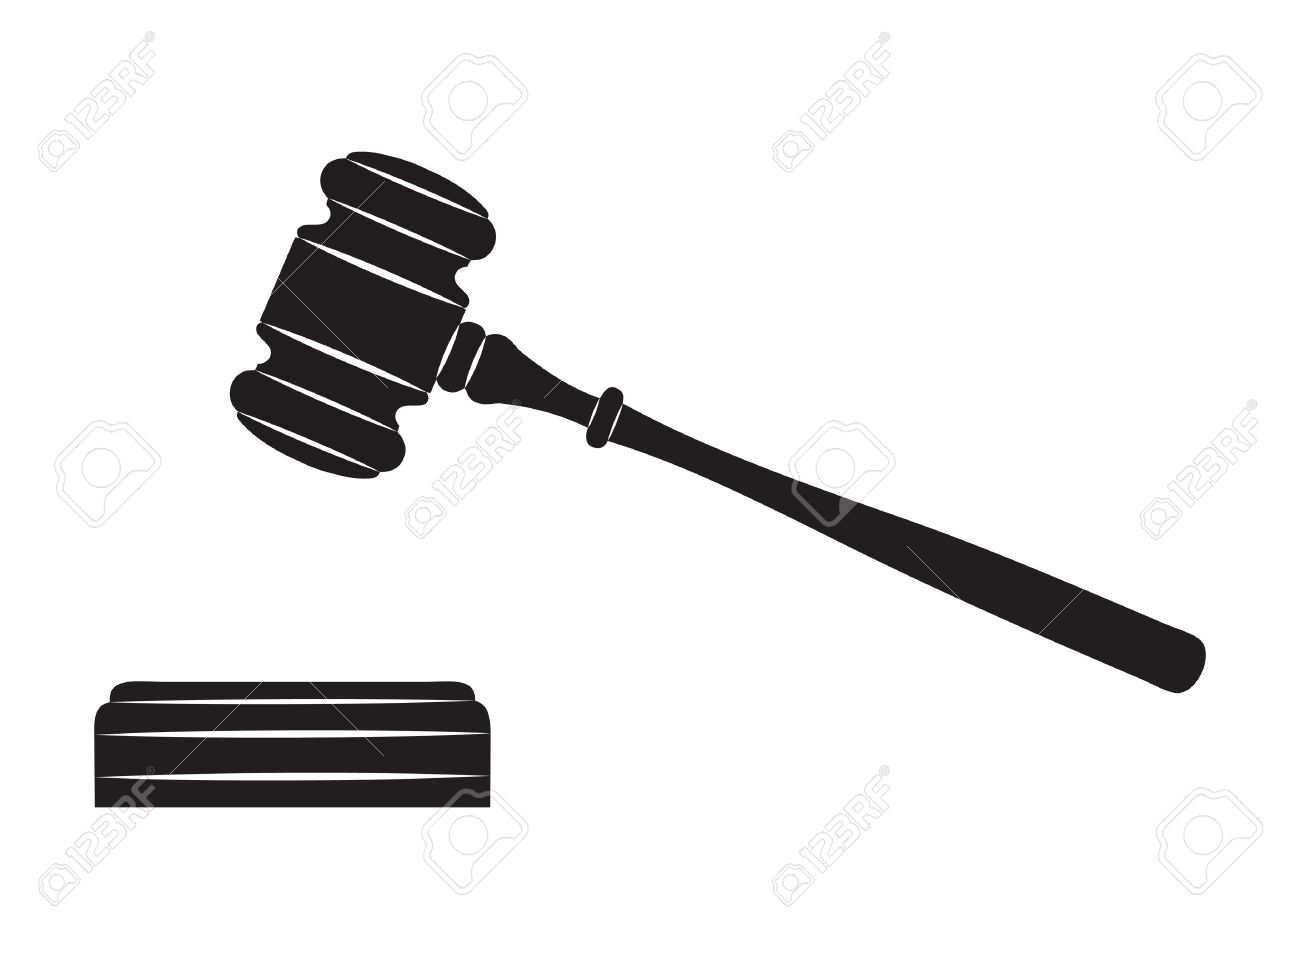 Judge gavel Black silhouette on white background.